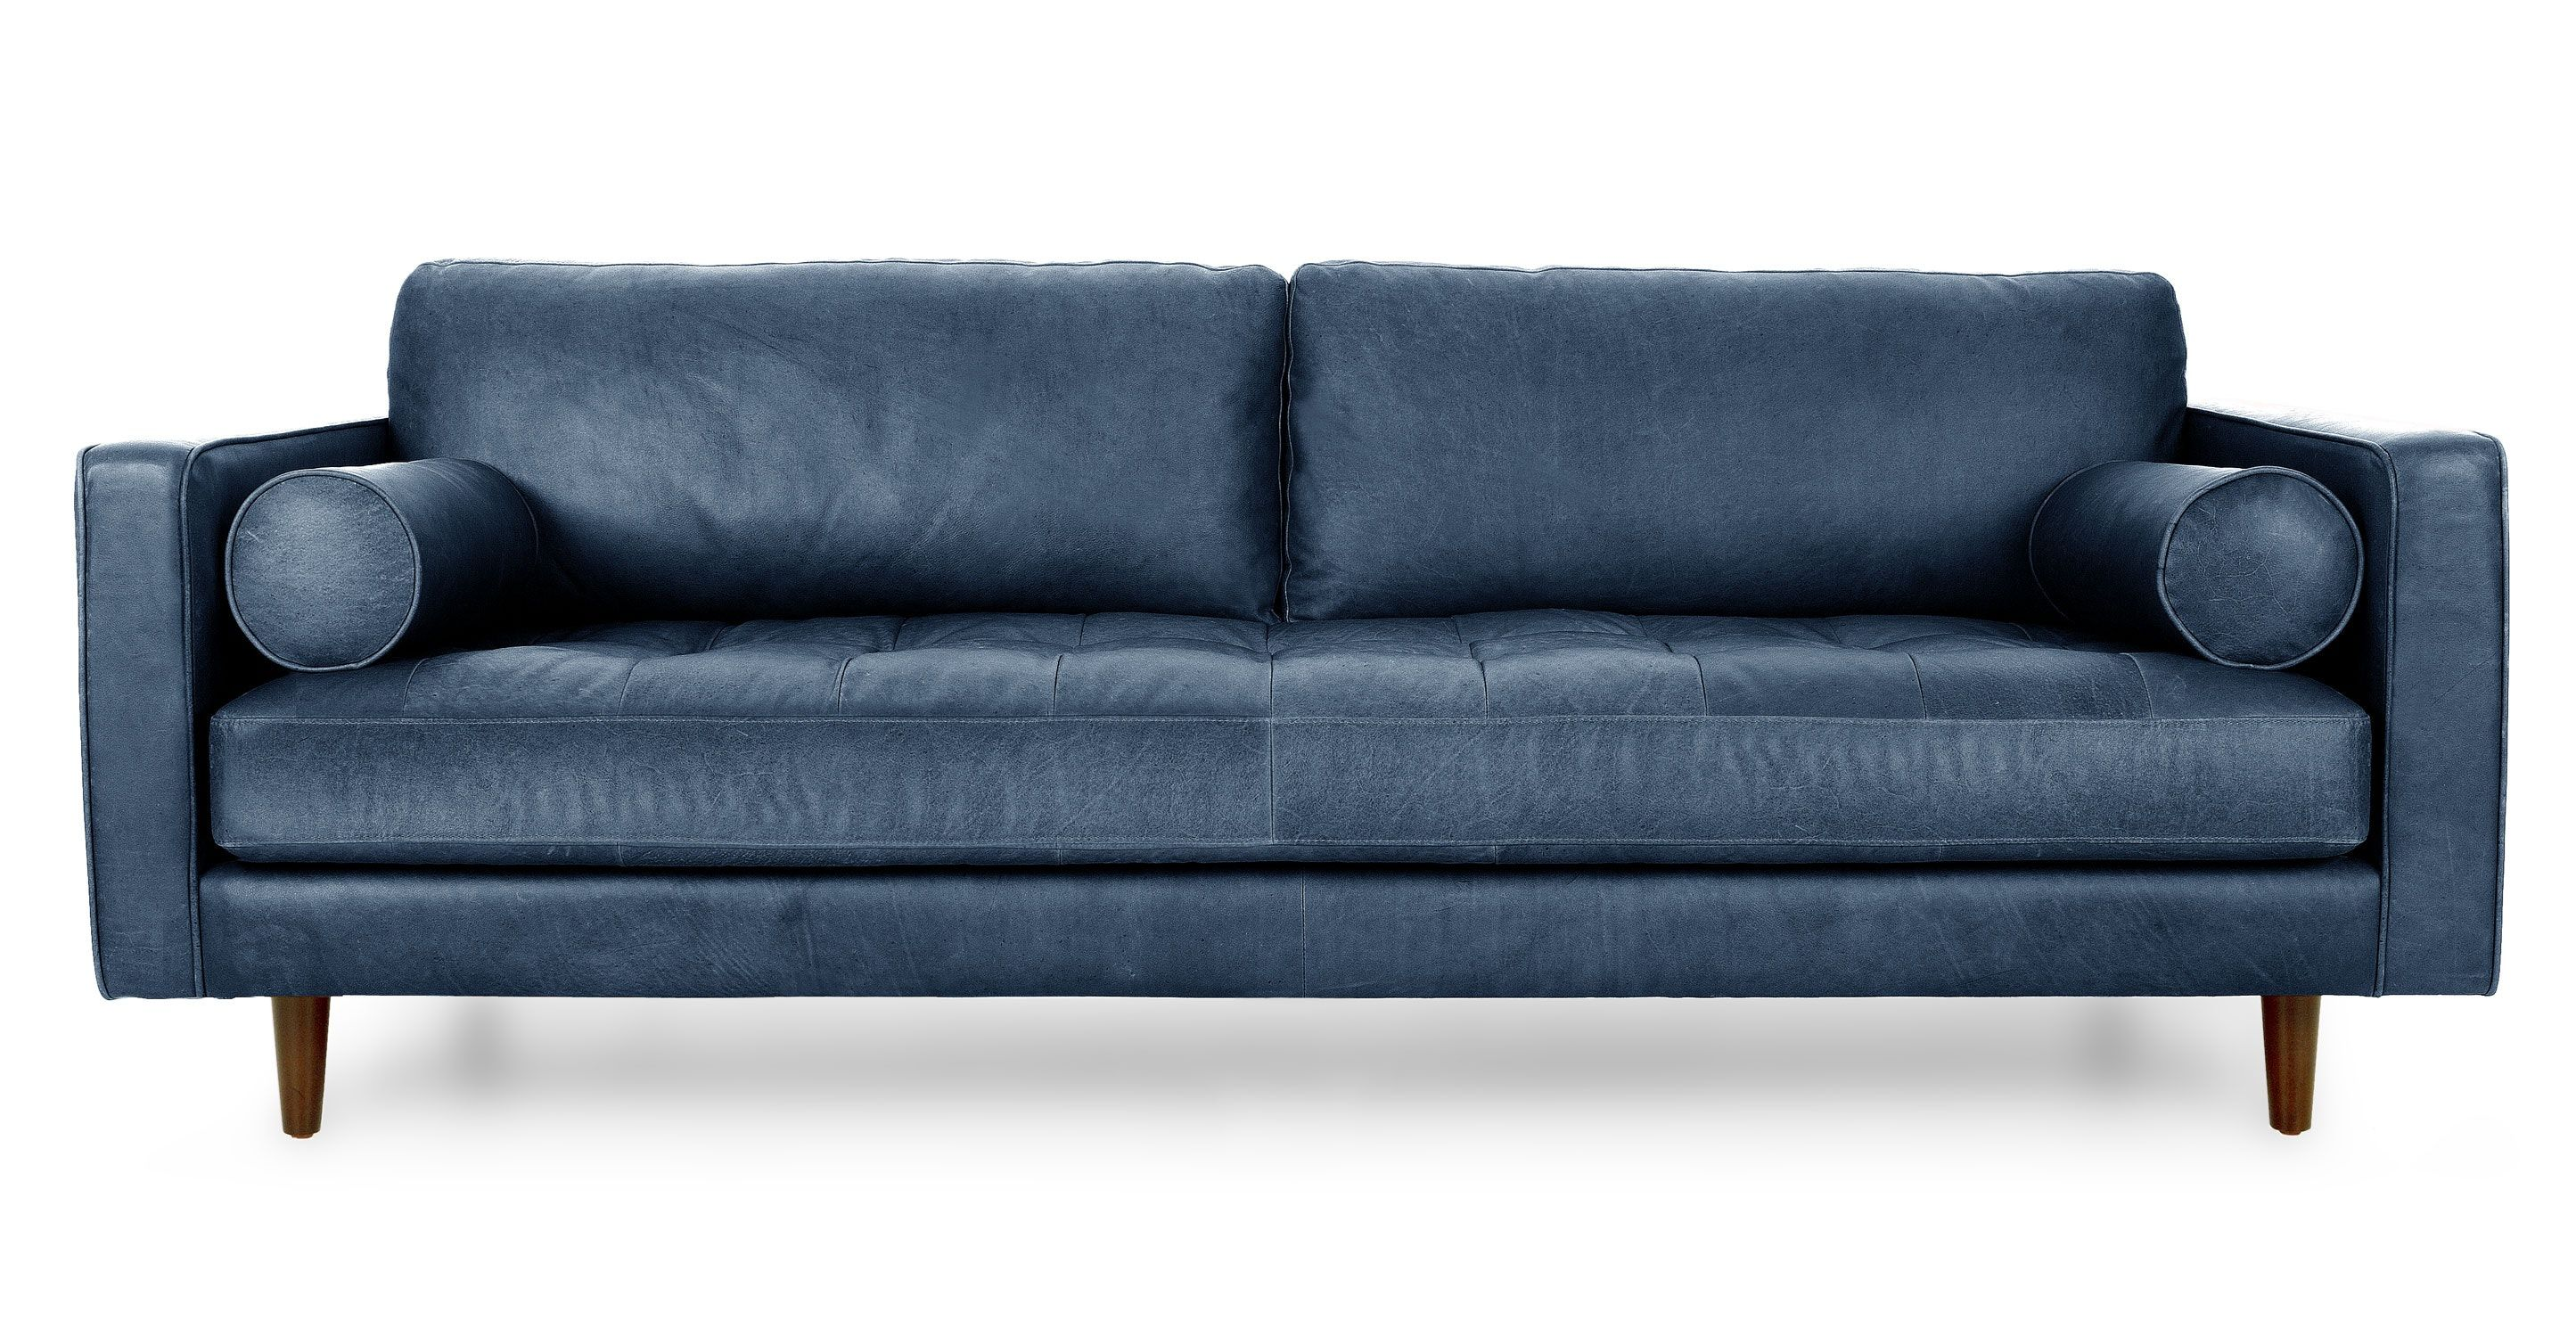 Sven Oxford Blue Sofa Modern Leather Sofa Blue Leather Sofa